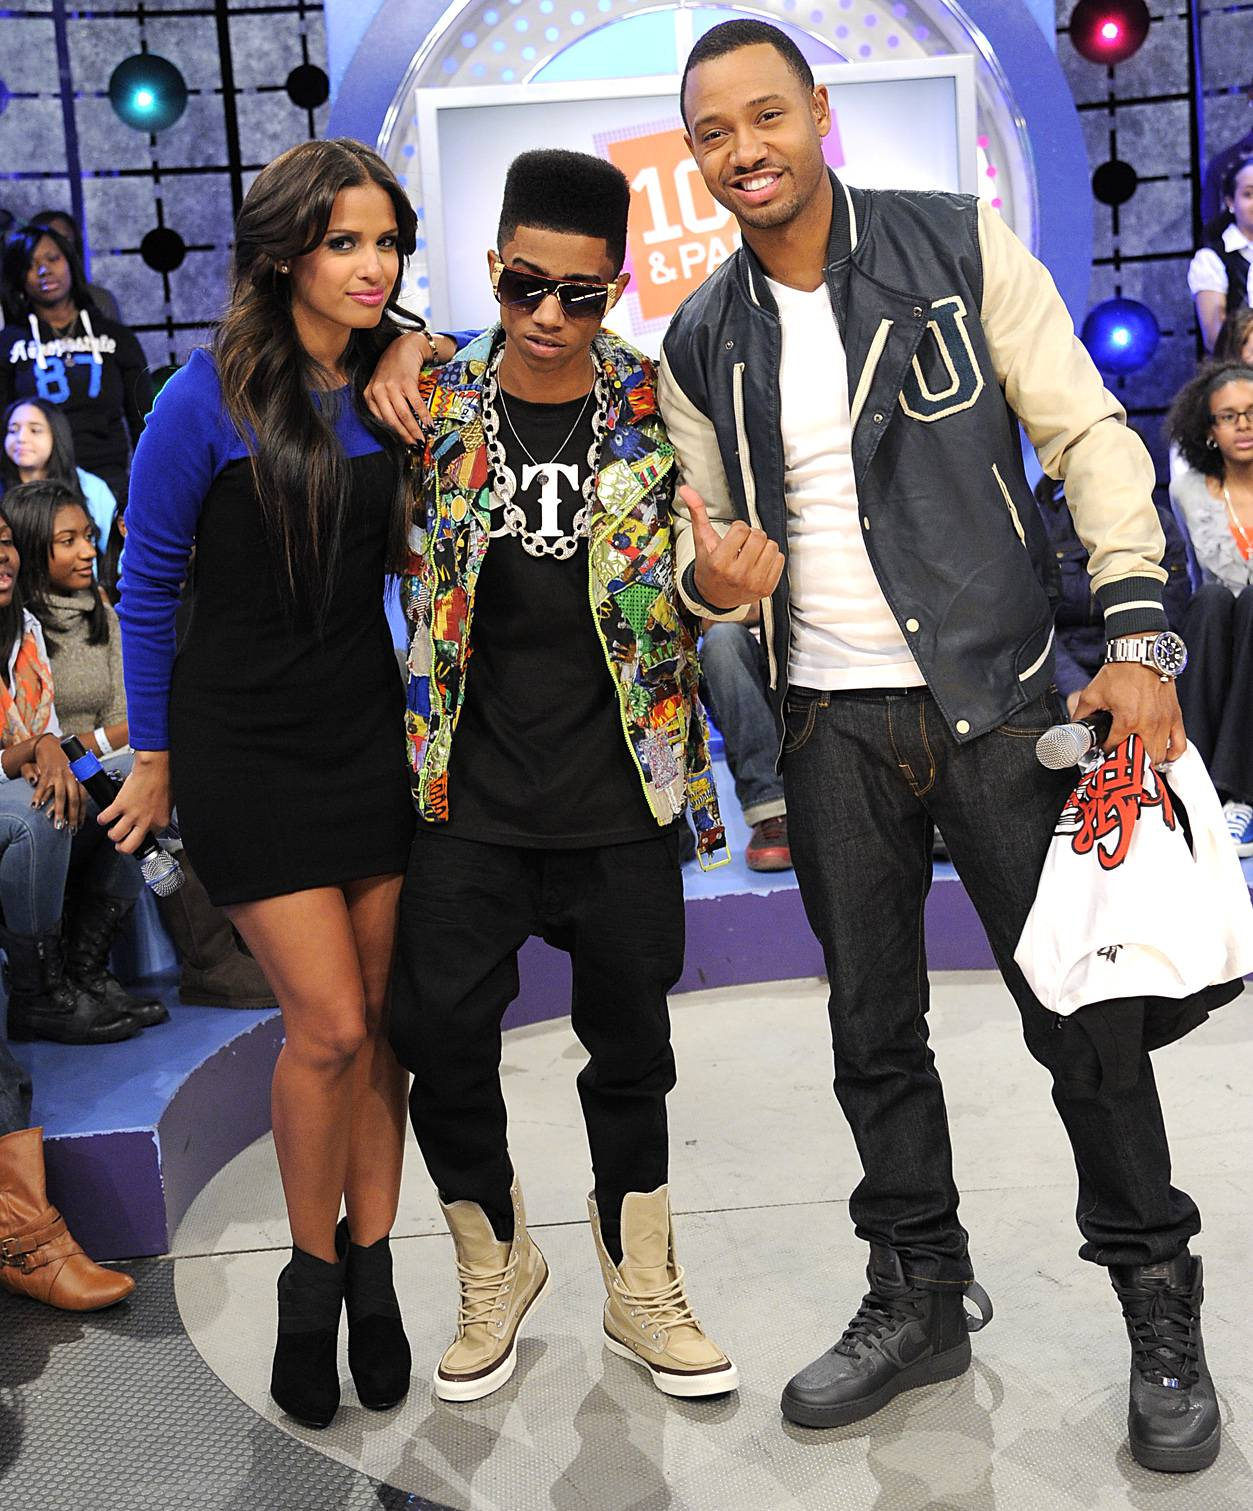 Take That - Lil Twist with Terrence J and Rocsi Diaz at 106 & Park, January 05, 2012.(Photo: John Ricard/BET)